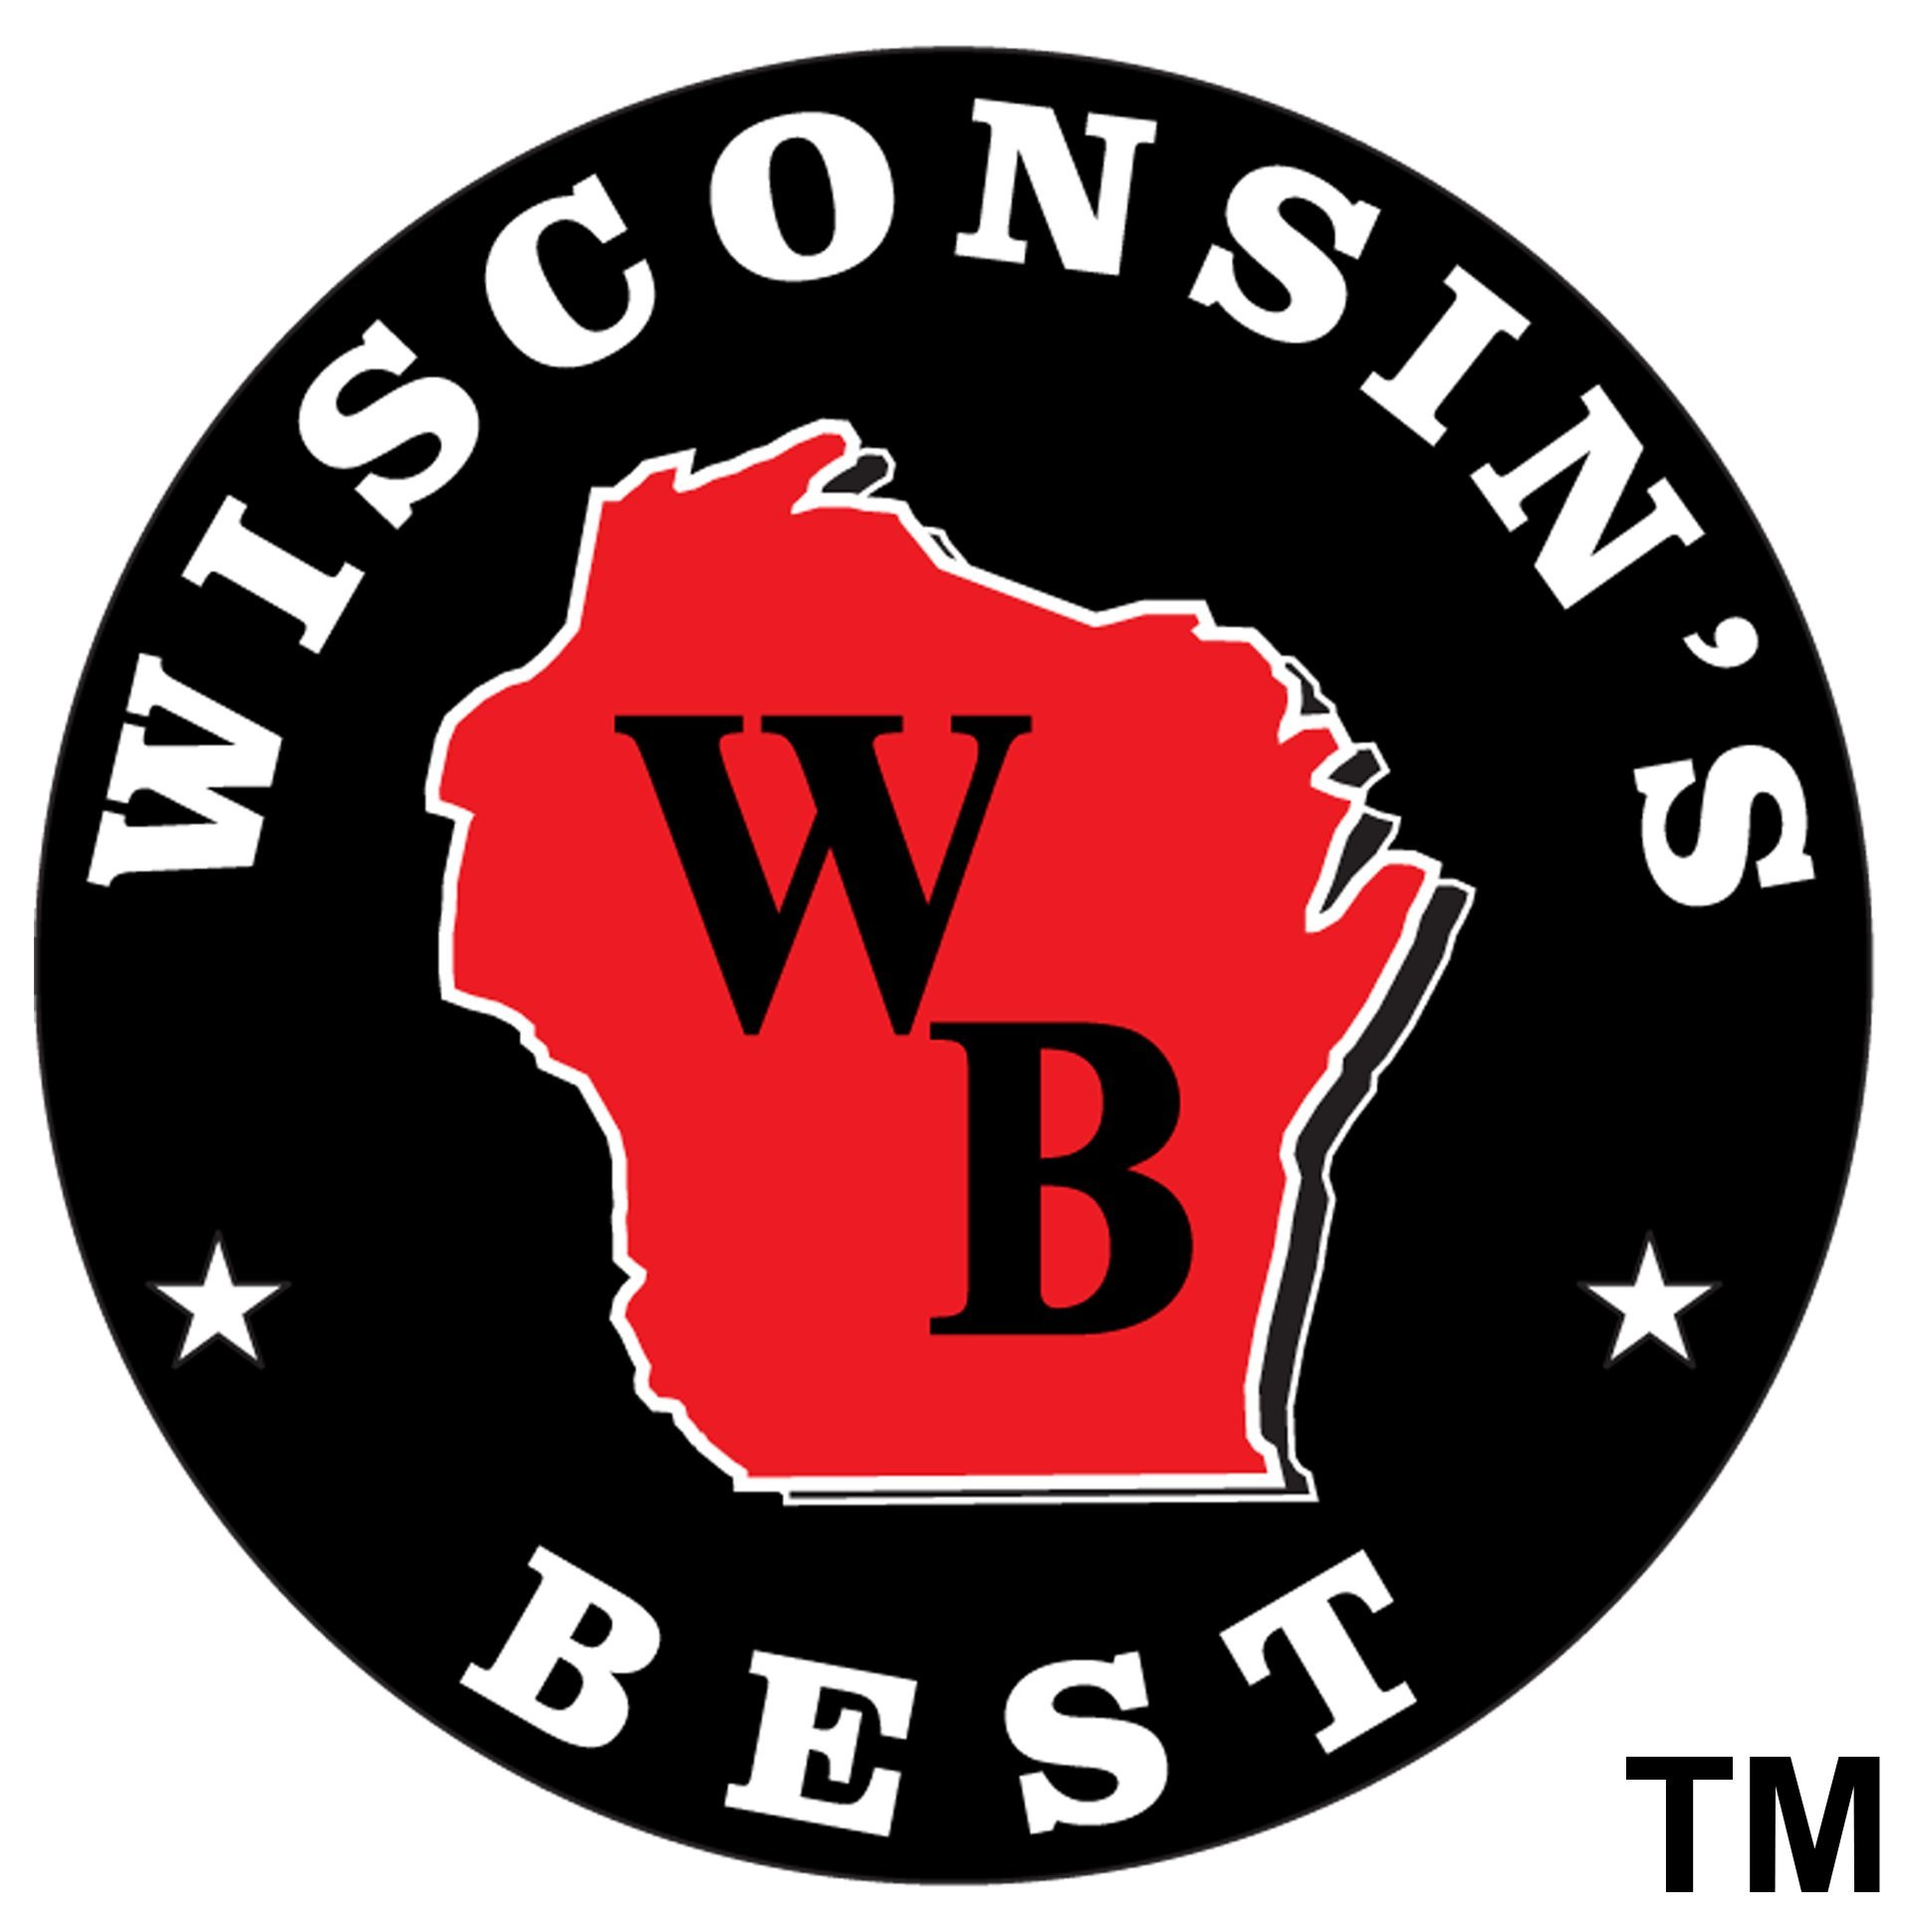 Gourmet Variety Sampler Gift Basket - Smoked Summer Sausages & 100% Wisconsin Cheeses - GLUTEN-FREE - Perfect Cheese and Sausage Snack!! by WISCONSIN'S BEST and WISCONSIN CHEESE COMPANY (Image #6)